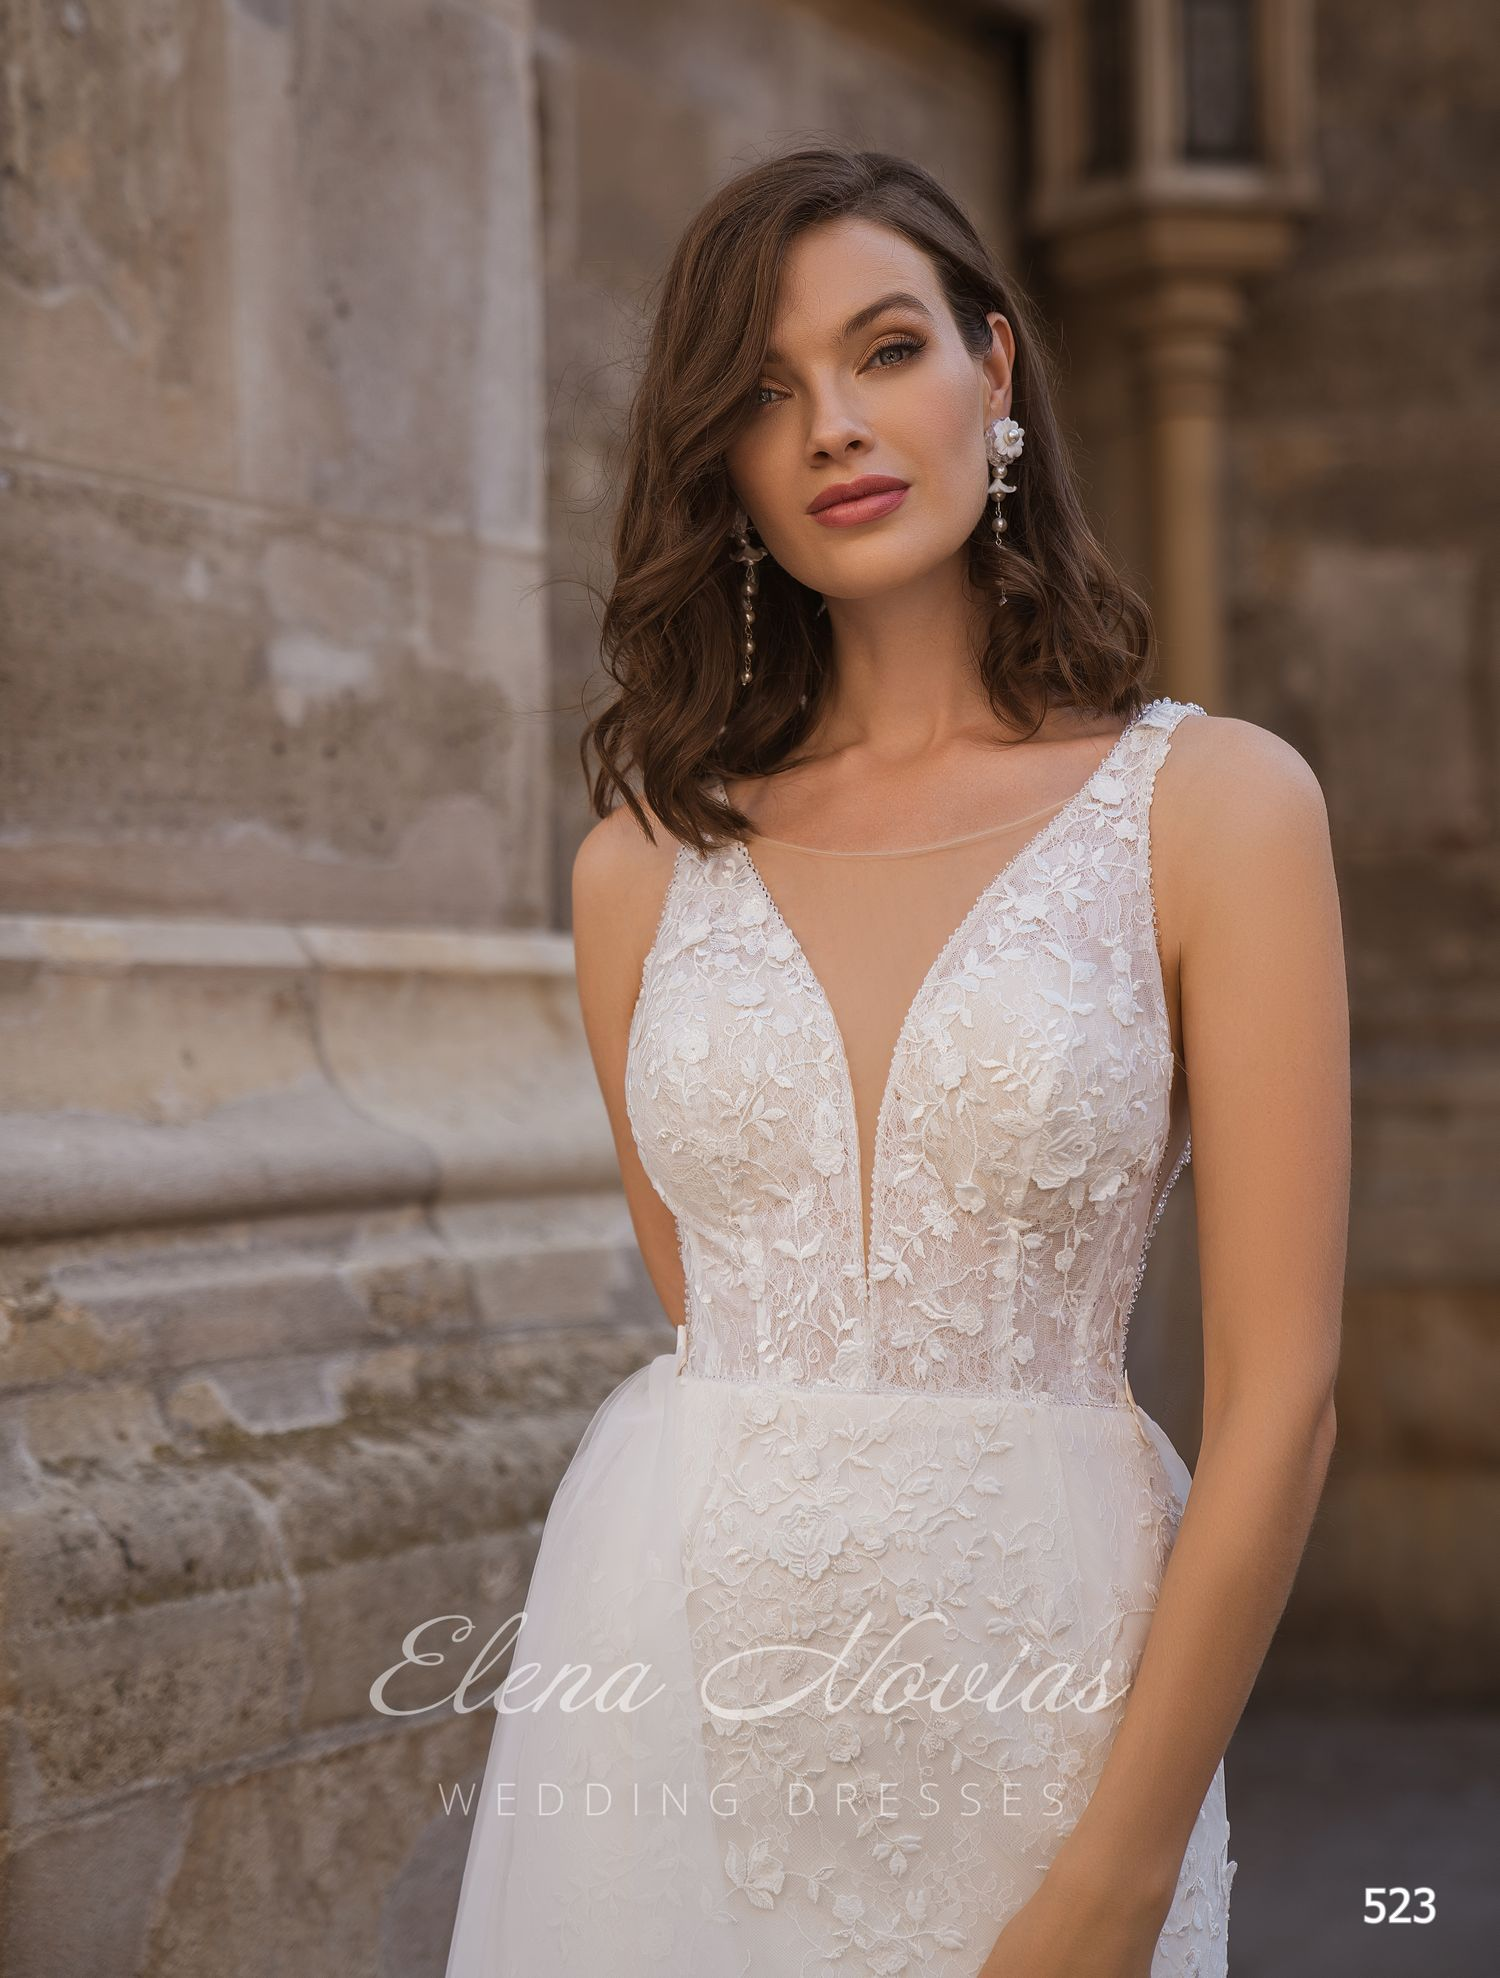 Wedding dresses 523 1